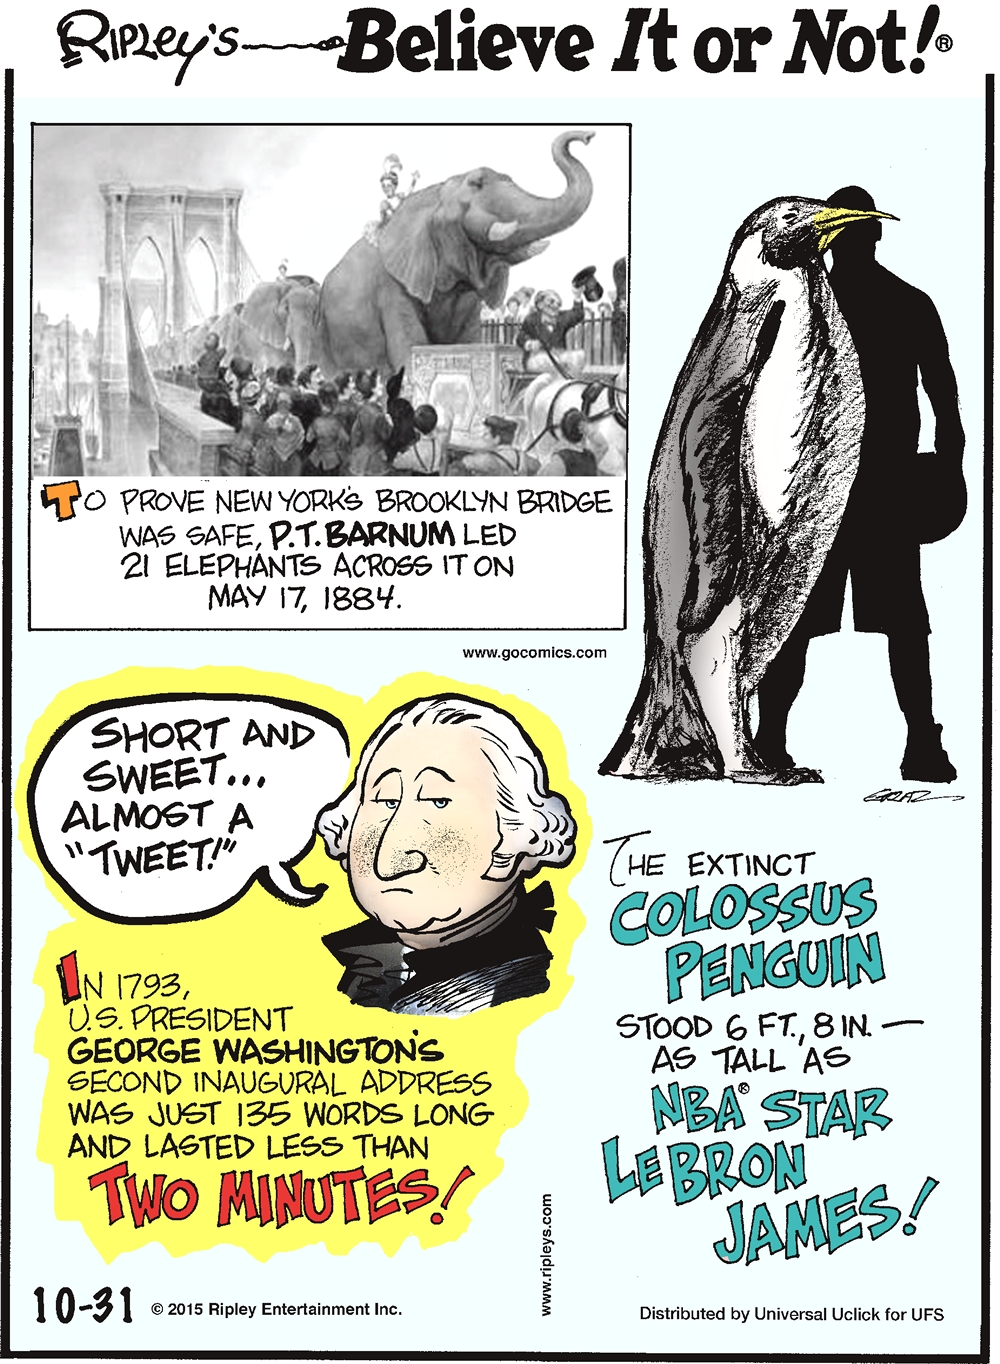 In 1793, U.S. President George Washington's second inaugural address was just 135 words long and lasted less than two minutes! The extinct Colossus penguin stood 6 ft. 8 in.—as tall as NBA® star LeBron James! To prove New York's Brooklyn Bridge was stable, P.T. Barnum safely led 21 elephants across the bridge on May 17, 1884.